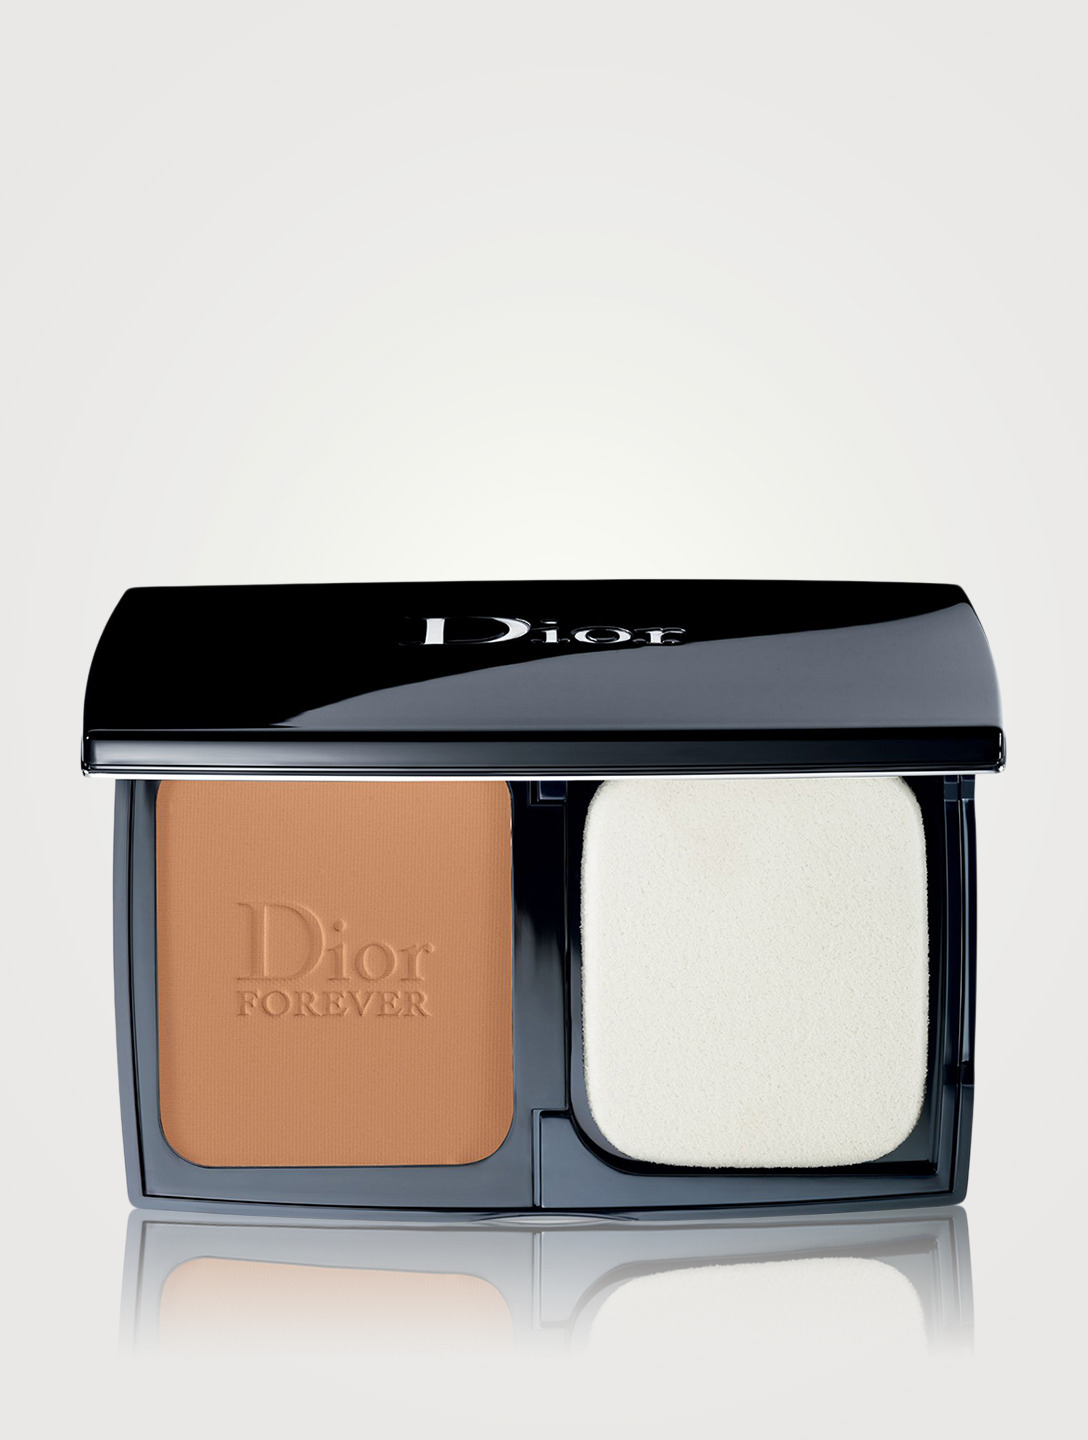 DIOR Diorskin Forever Extreme Control Powder Compact Beauty Brown